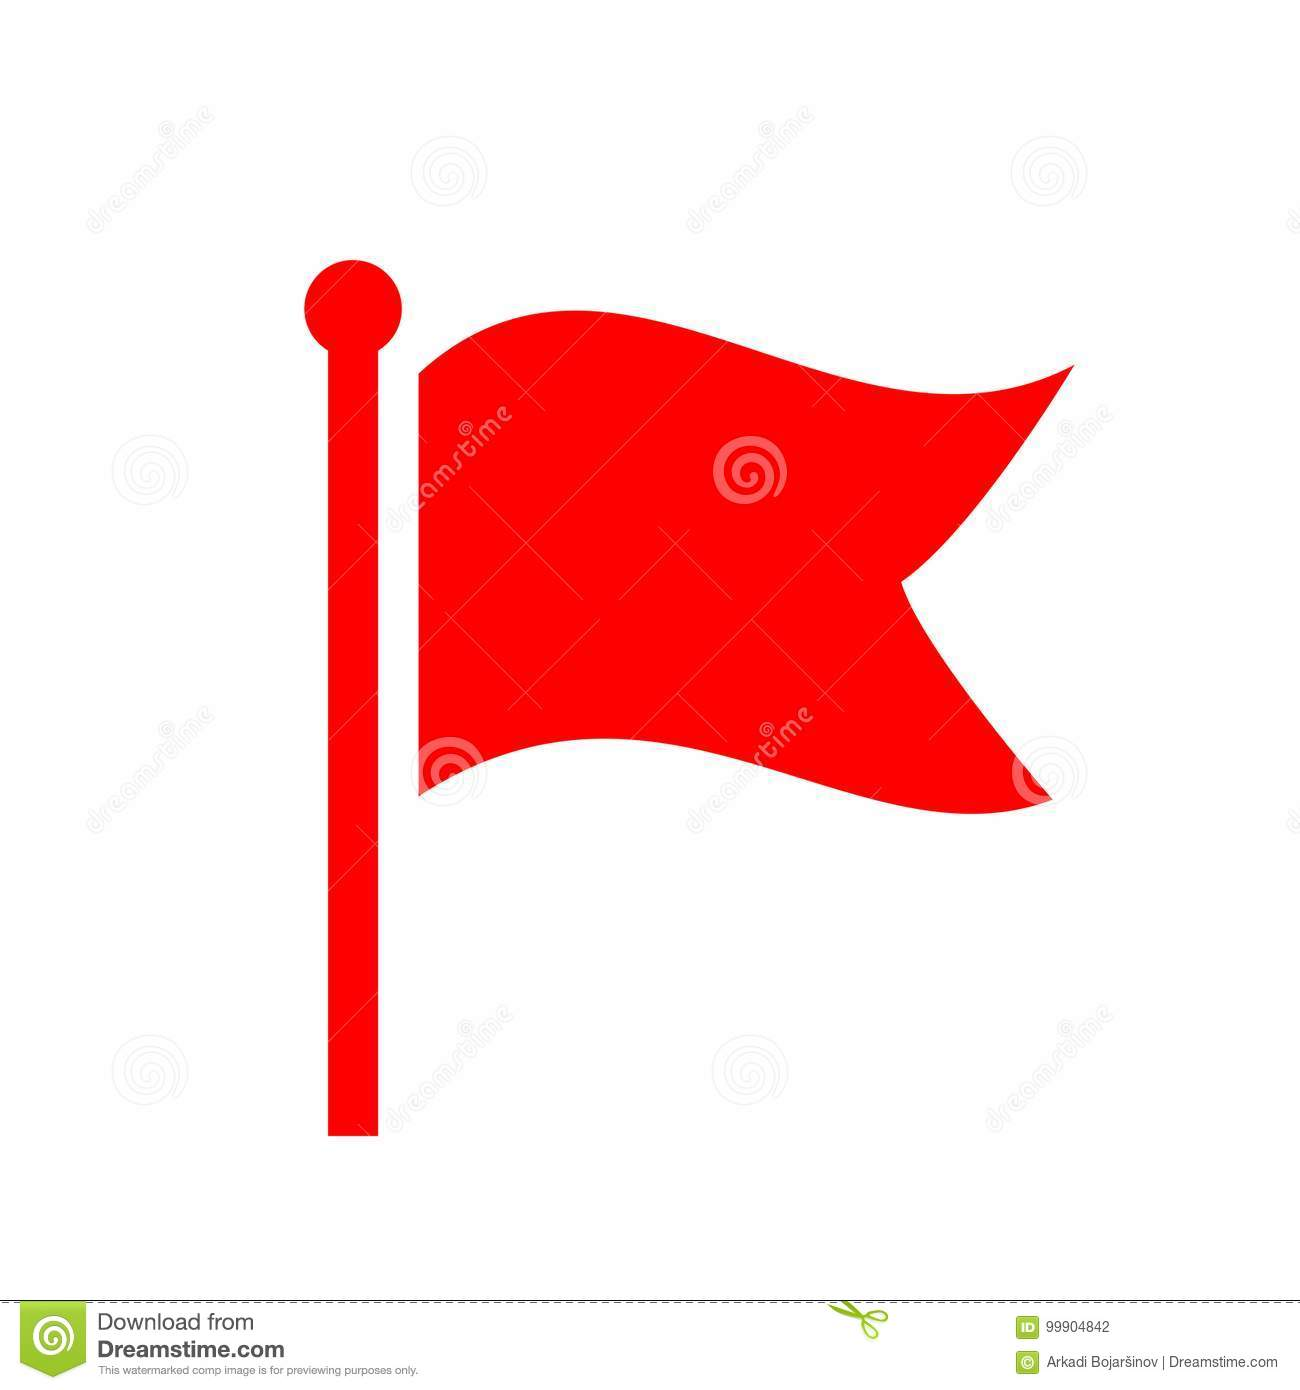 Red Waving Flag Vector Icon Stock Vector - Illustration of isolated